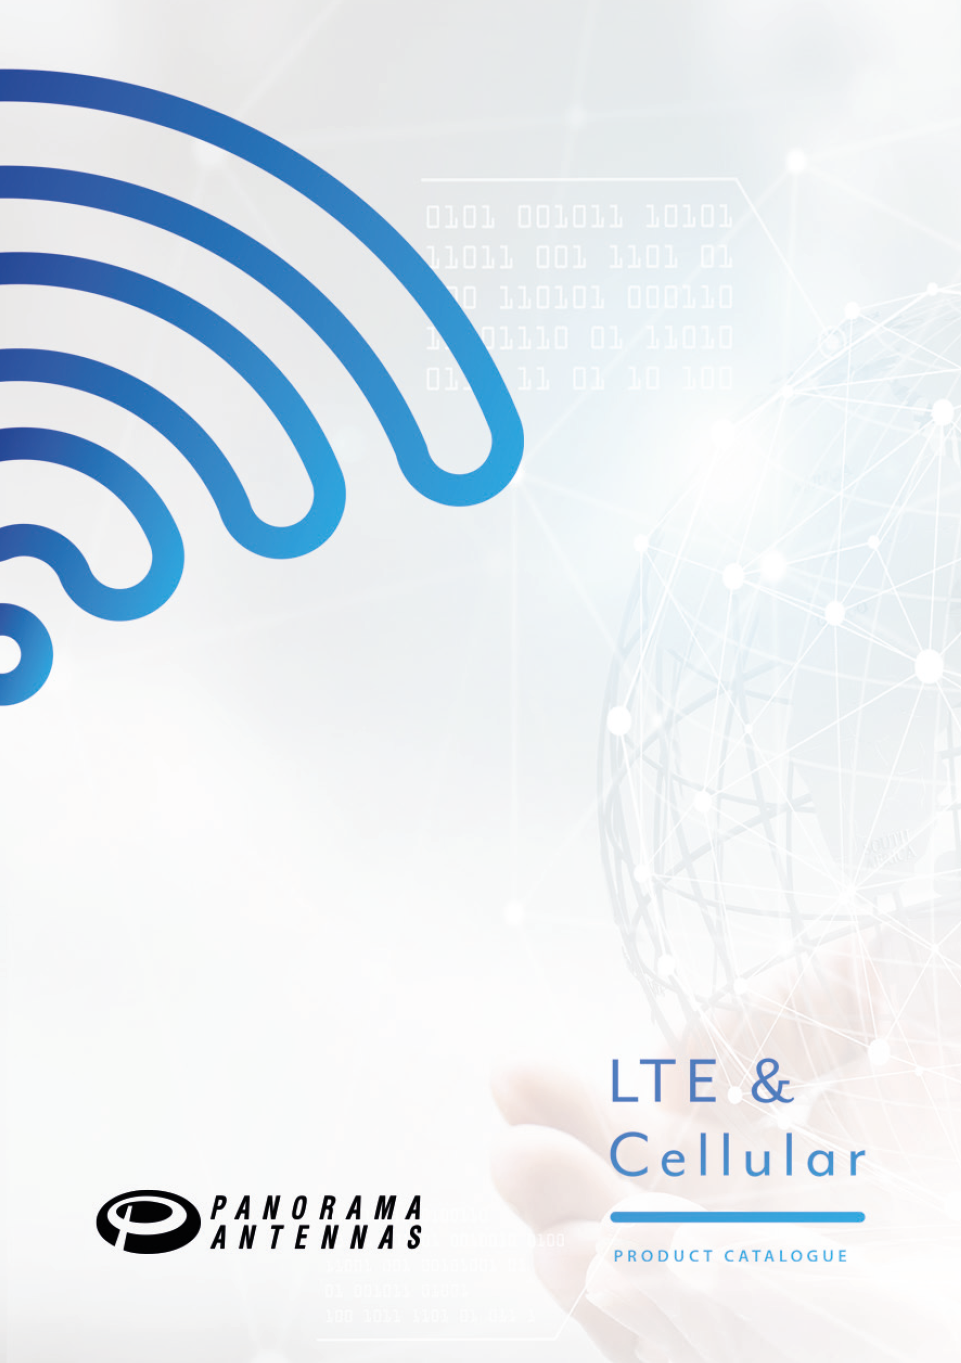 LTE & Cellular antennas